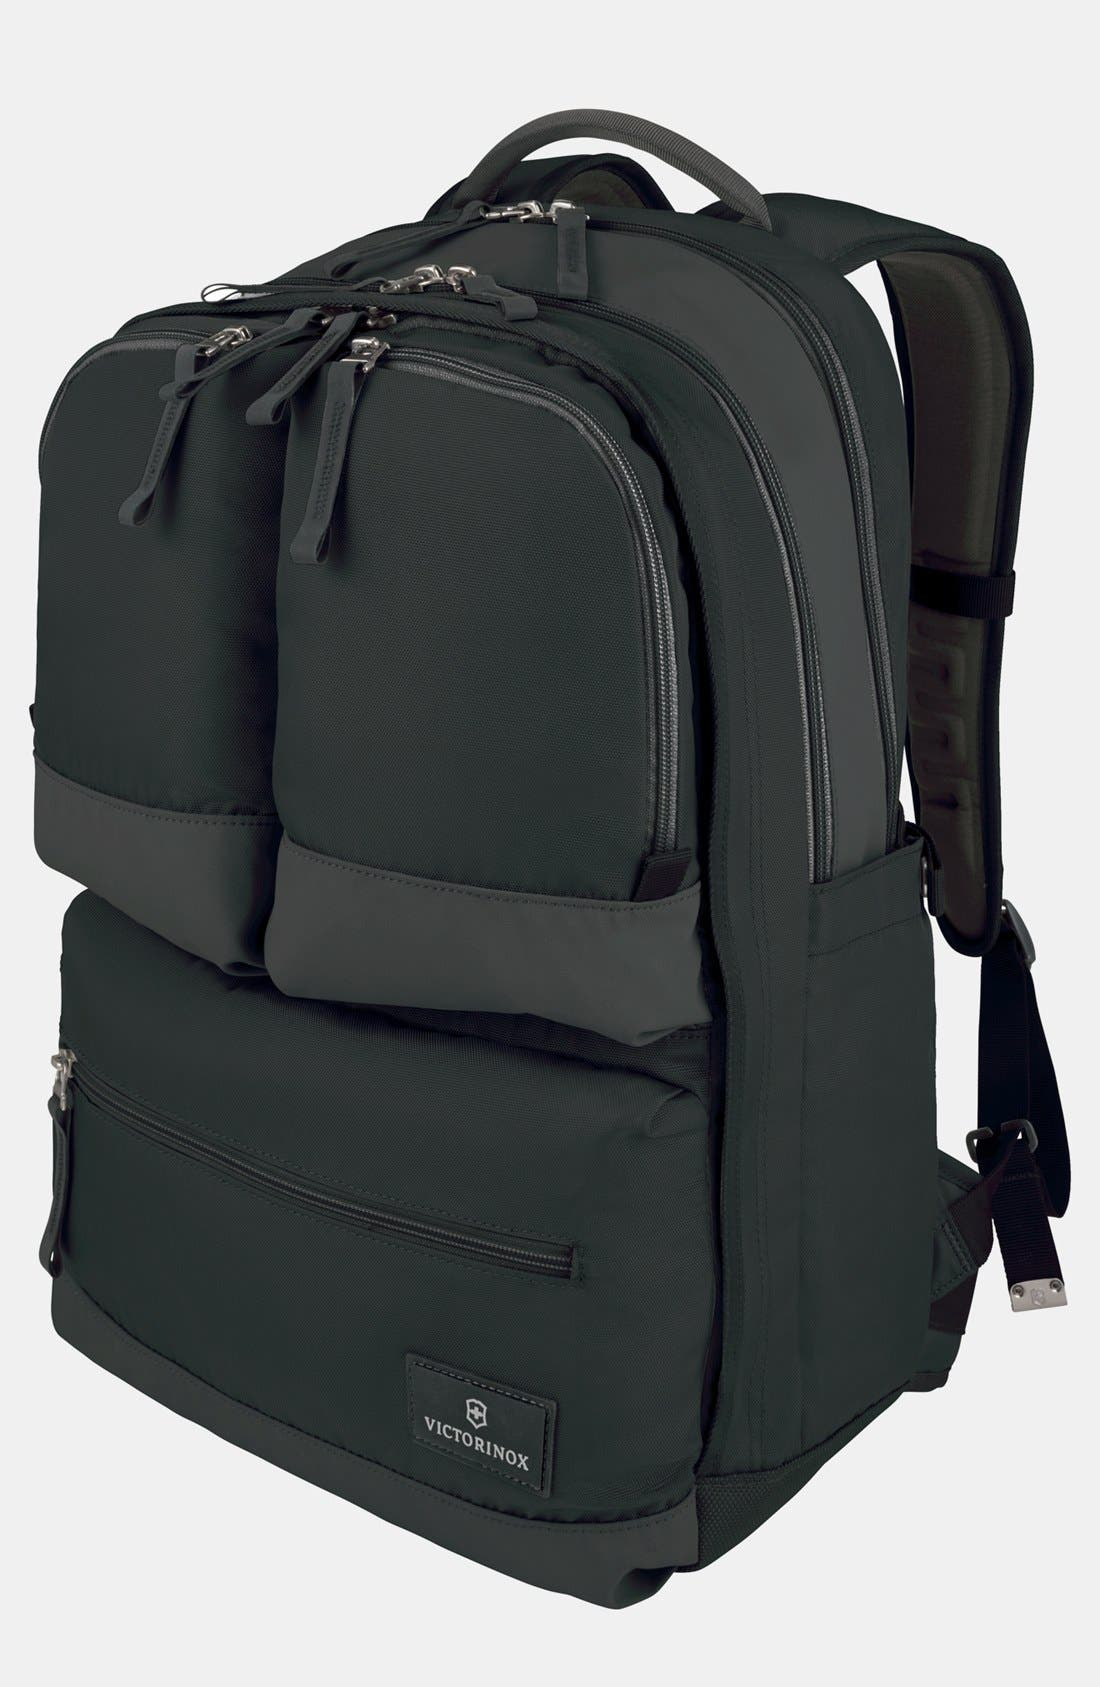 Dual Compartment Backpack,                             Main thumbnail 1, color,                             001